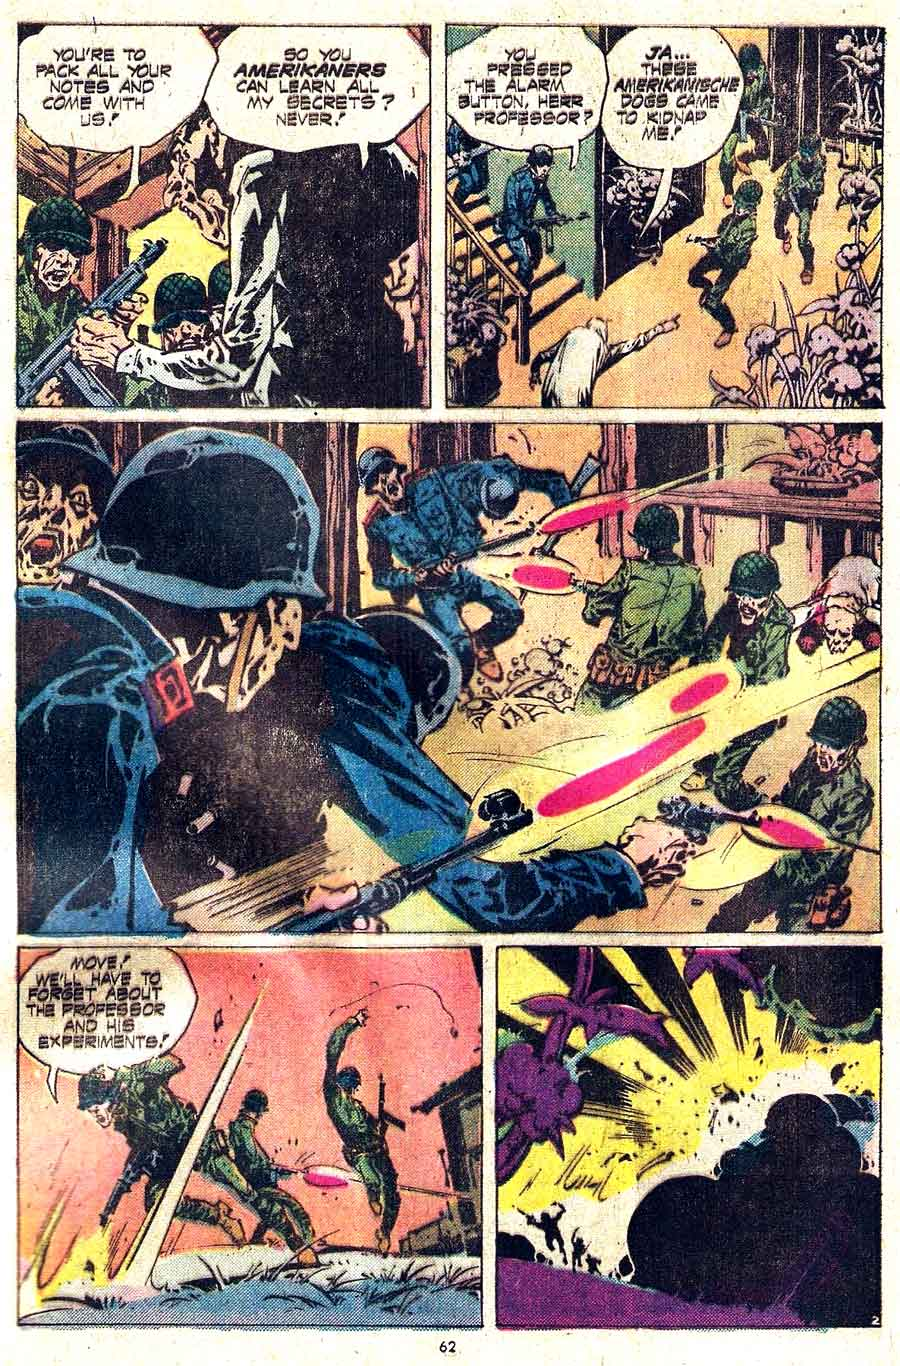 Weird War Tales v1 #36 dc bronze age comic book page art by Alex Nino